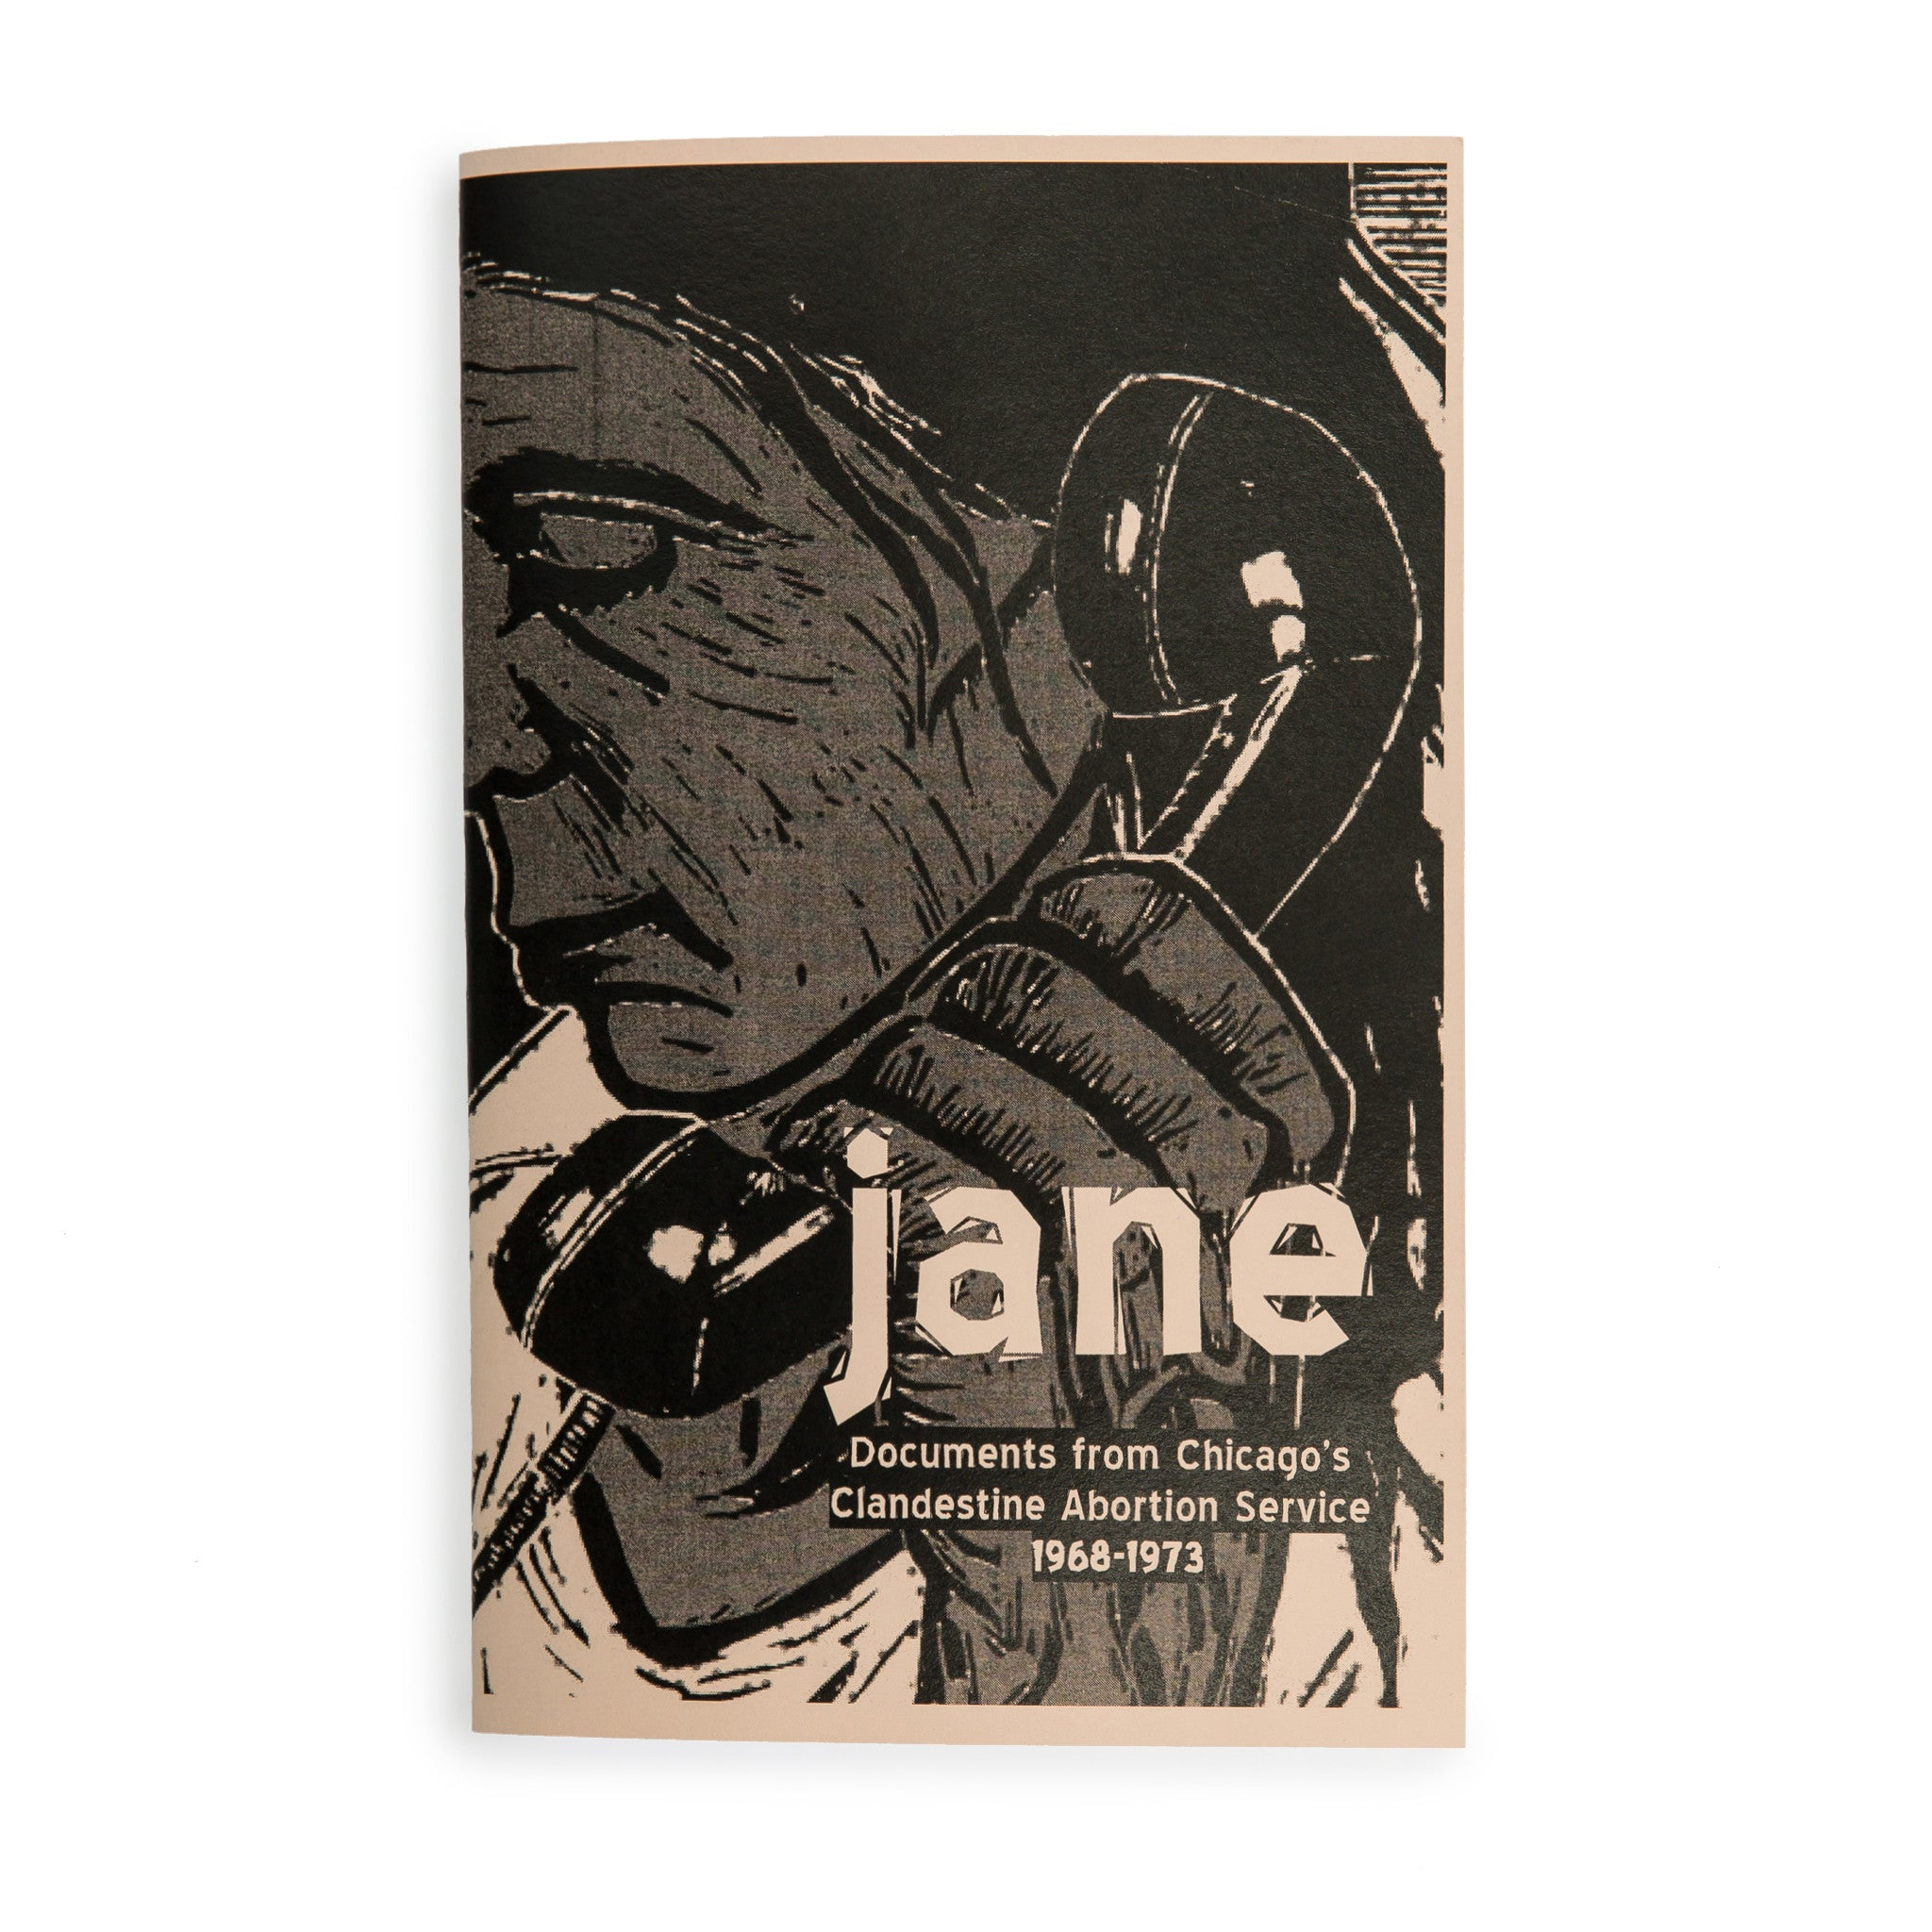 JANE: Documents from Chicago's Clandestine Abortion Service